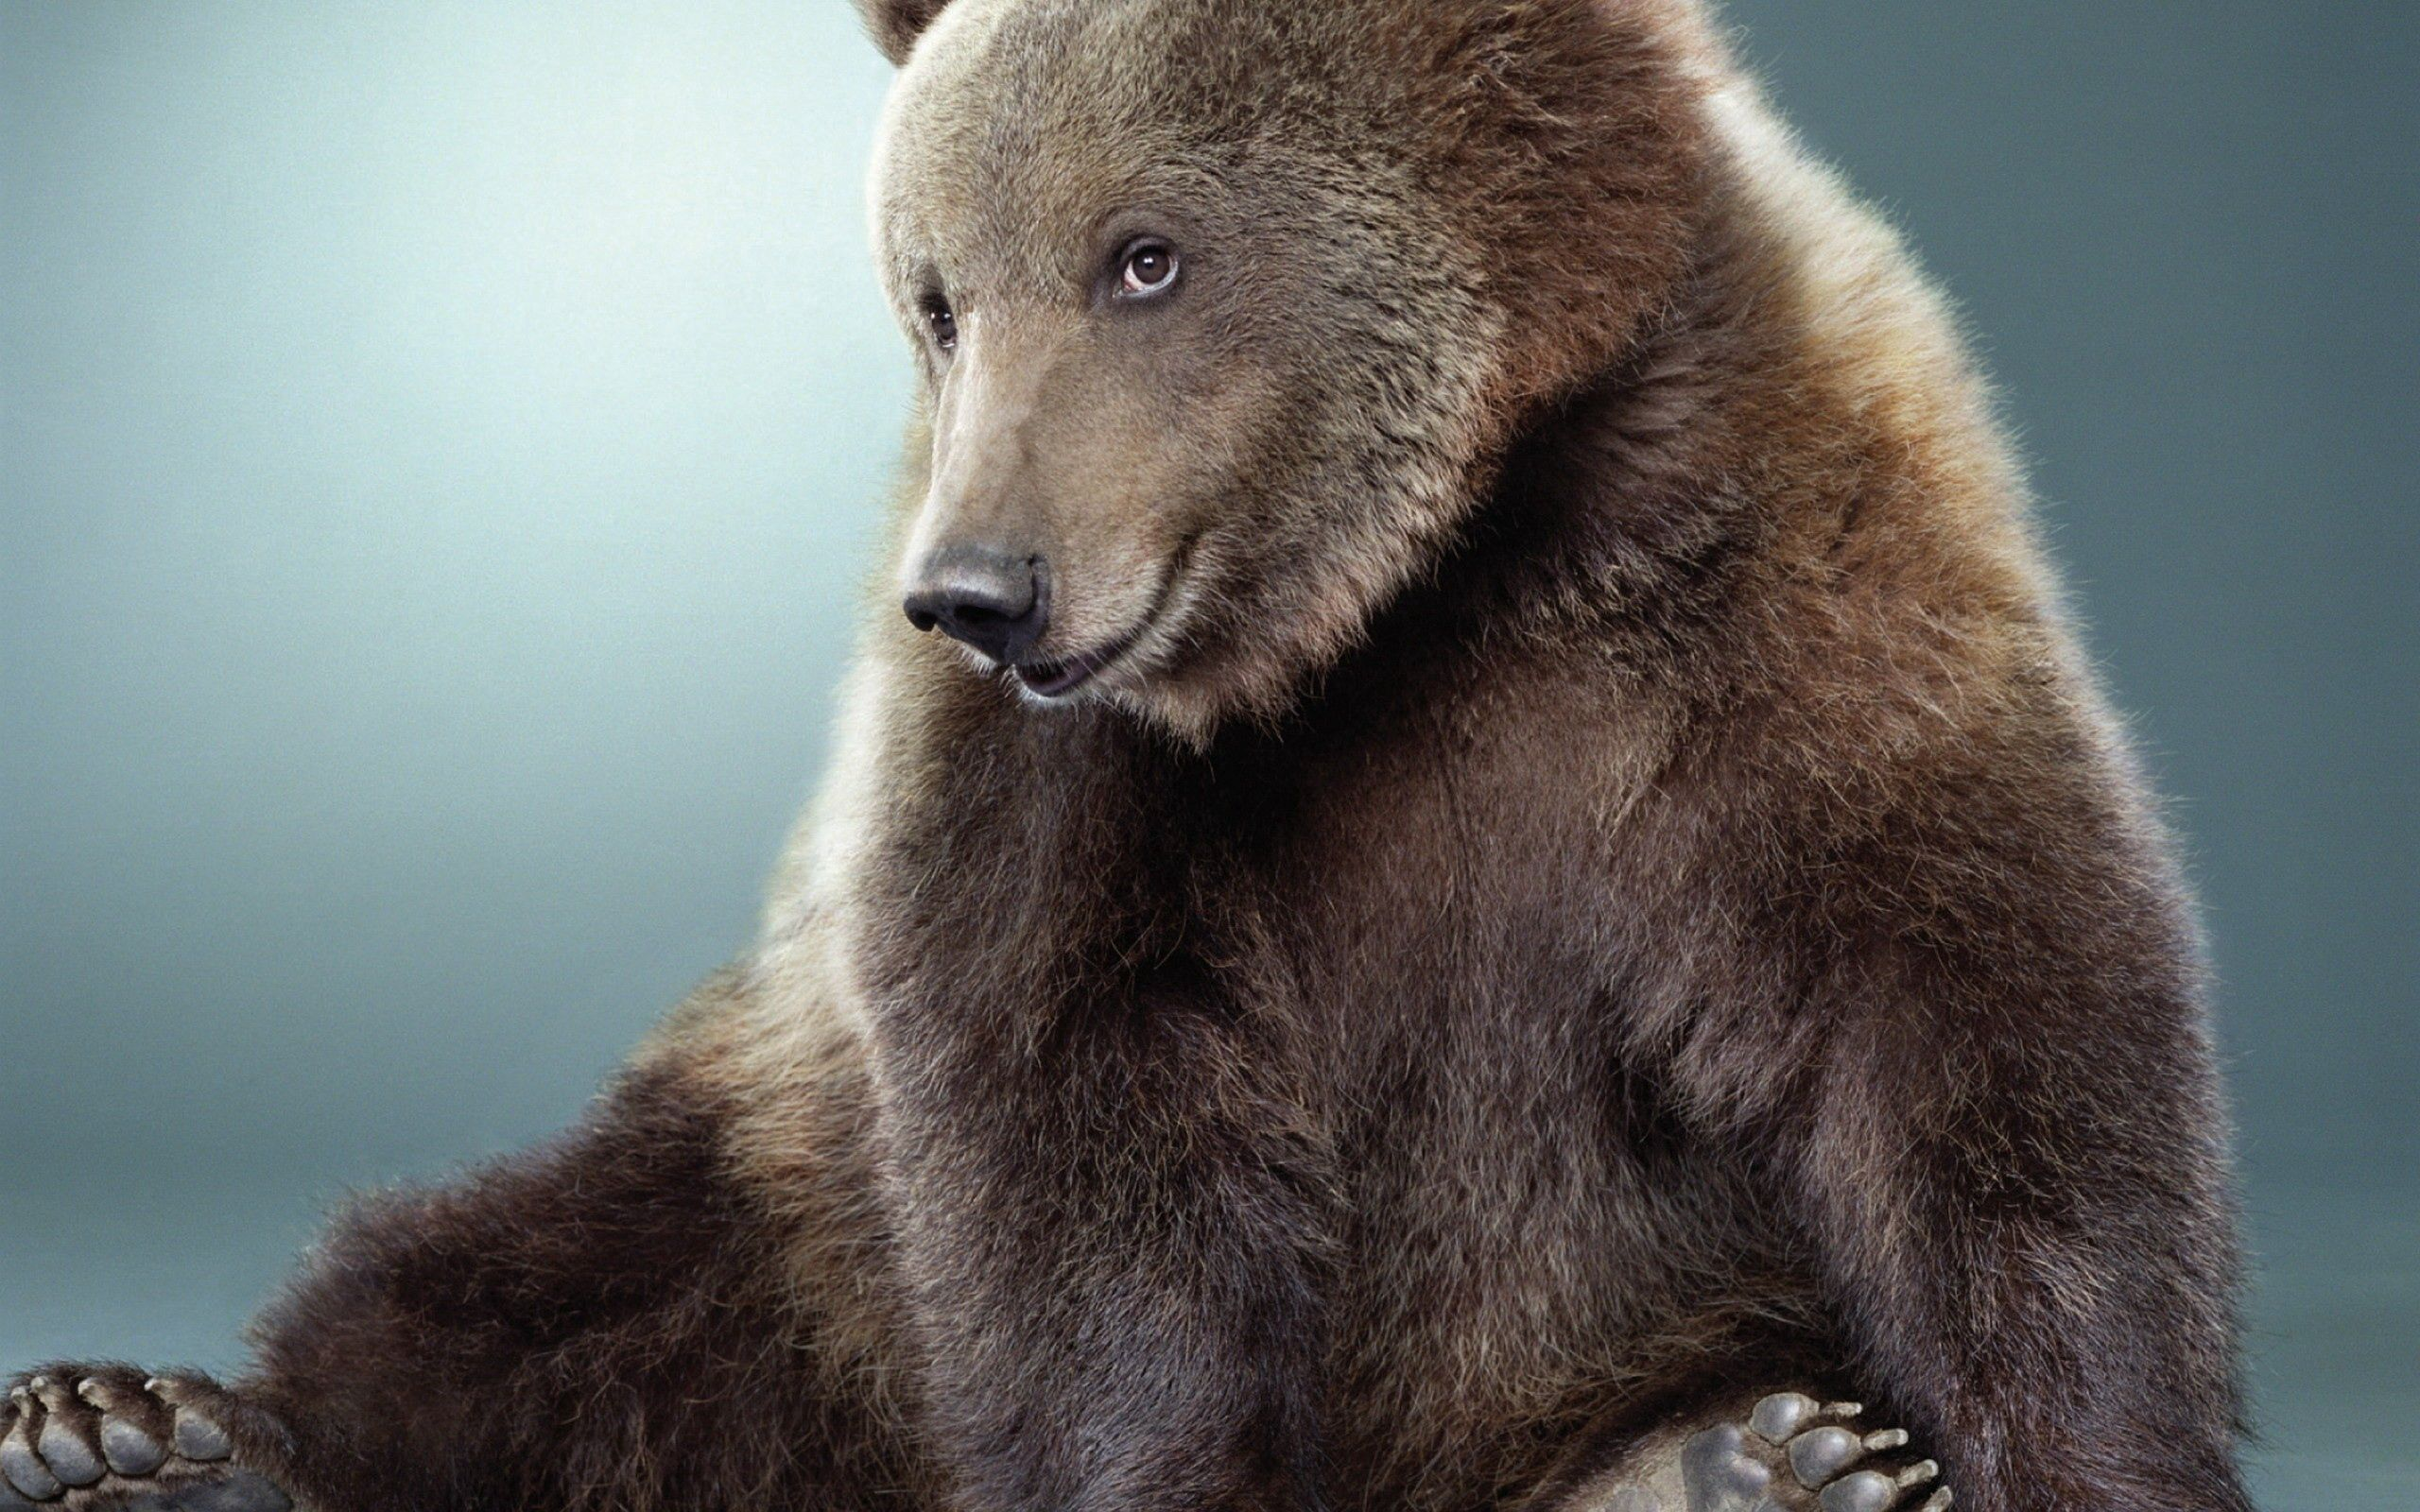 97452 download wallpaper Animals, Bear, Color, Nice, Sweetheart, Fur screensavers and pictures for free